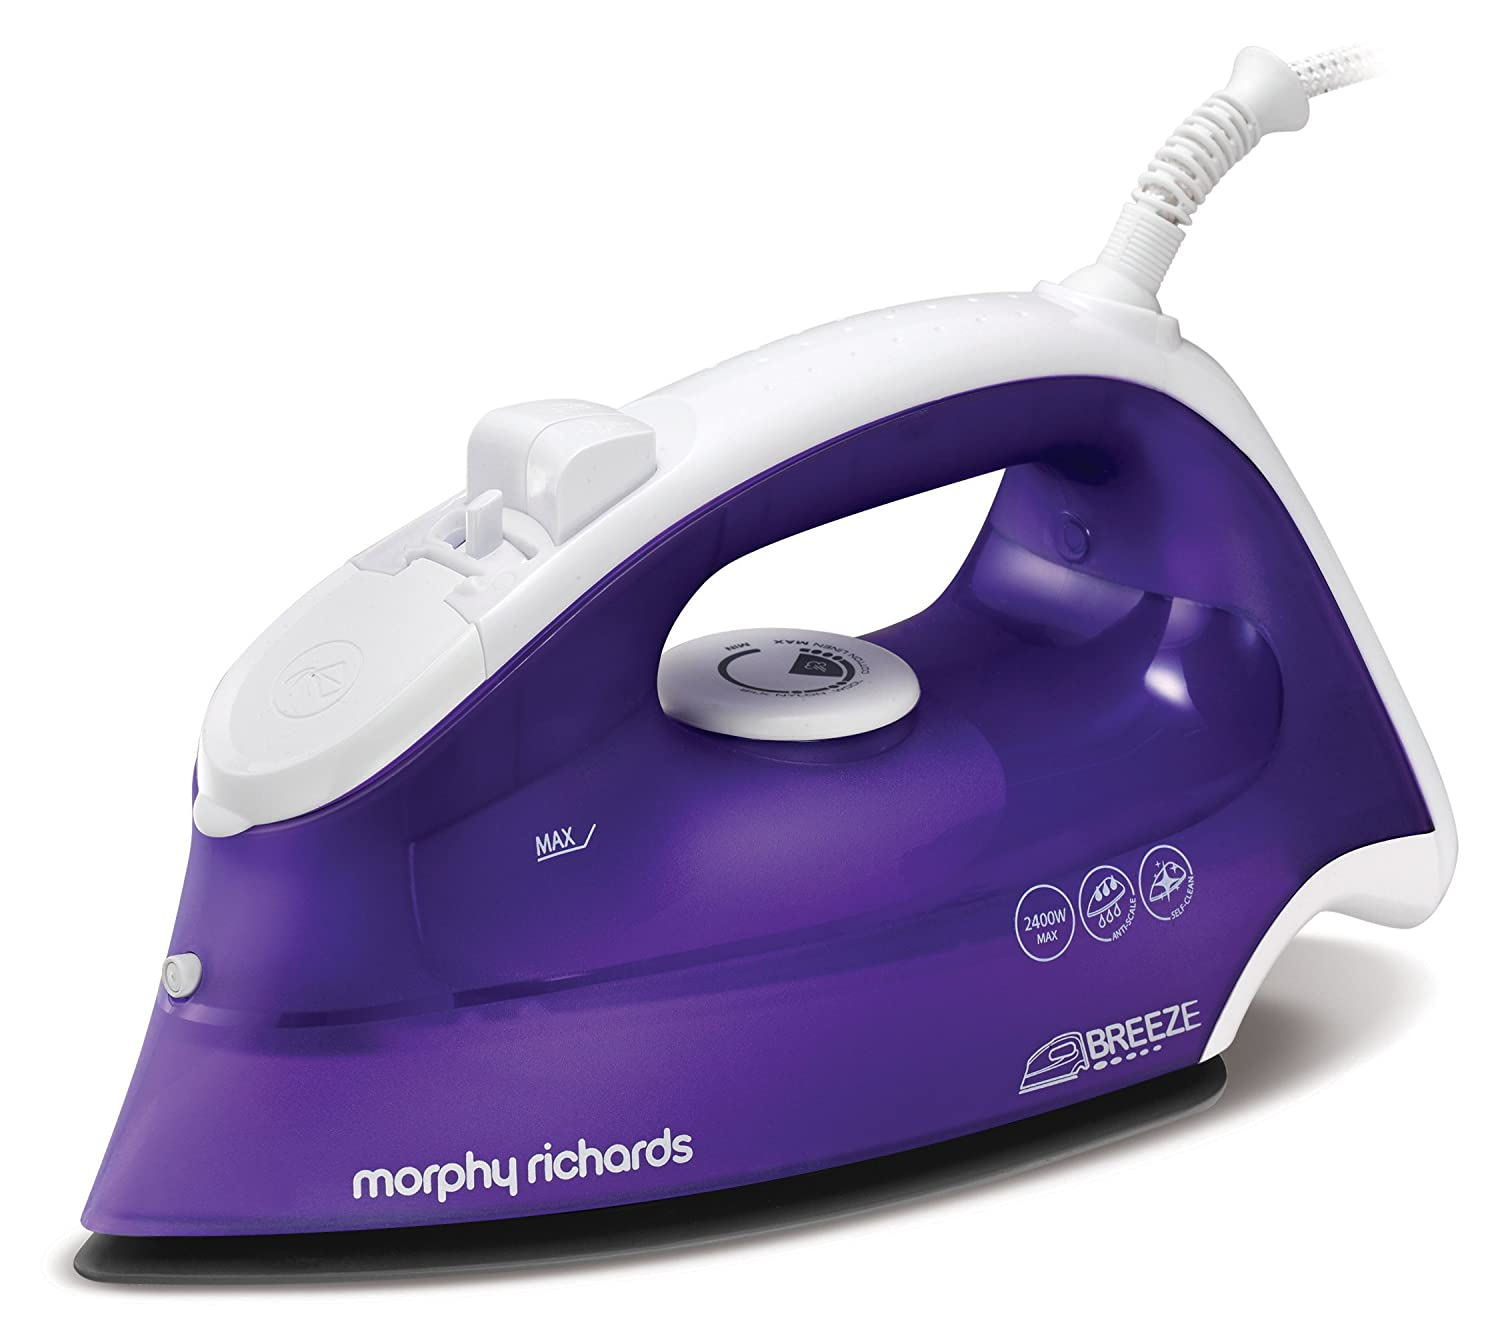 Morphy Richards Breeze Steam Iron 300275 Purple White Breeze Steam Iron